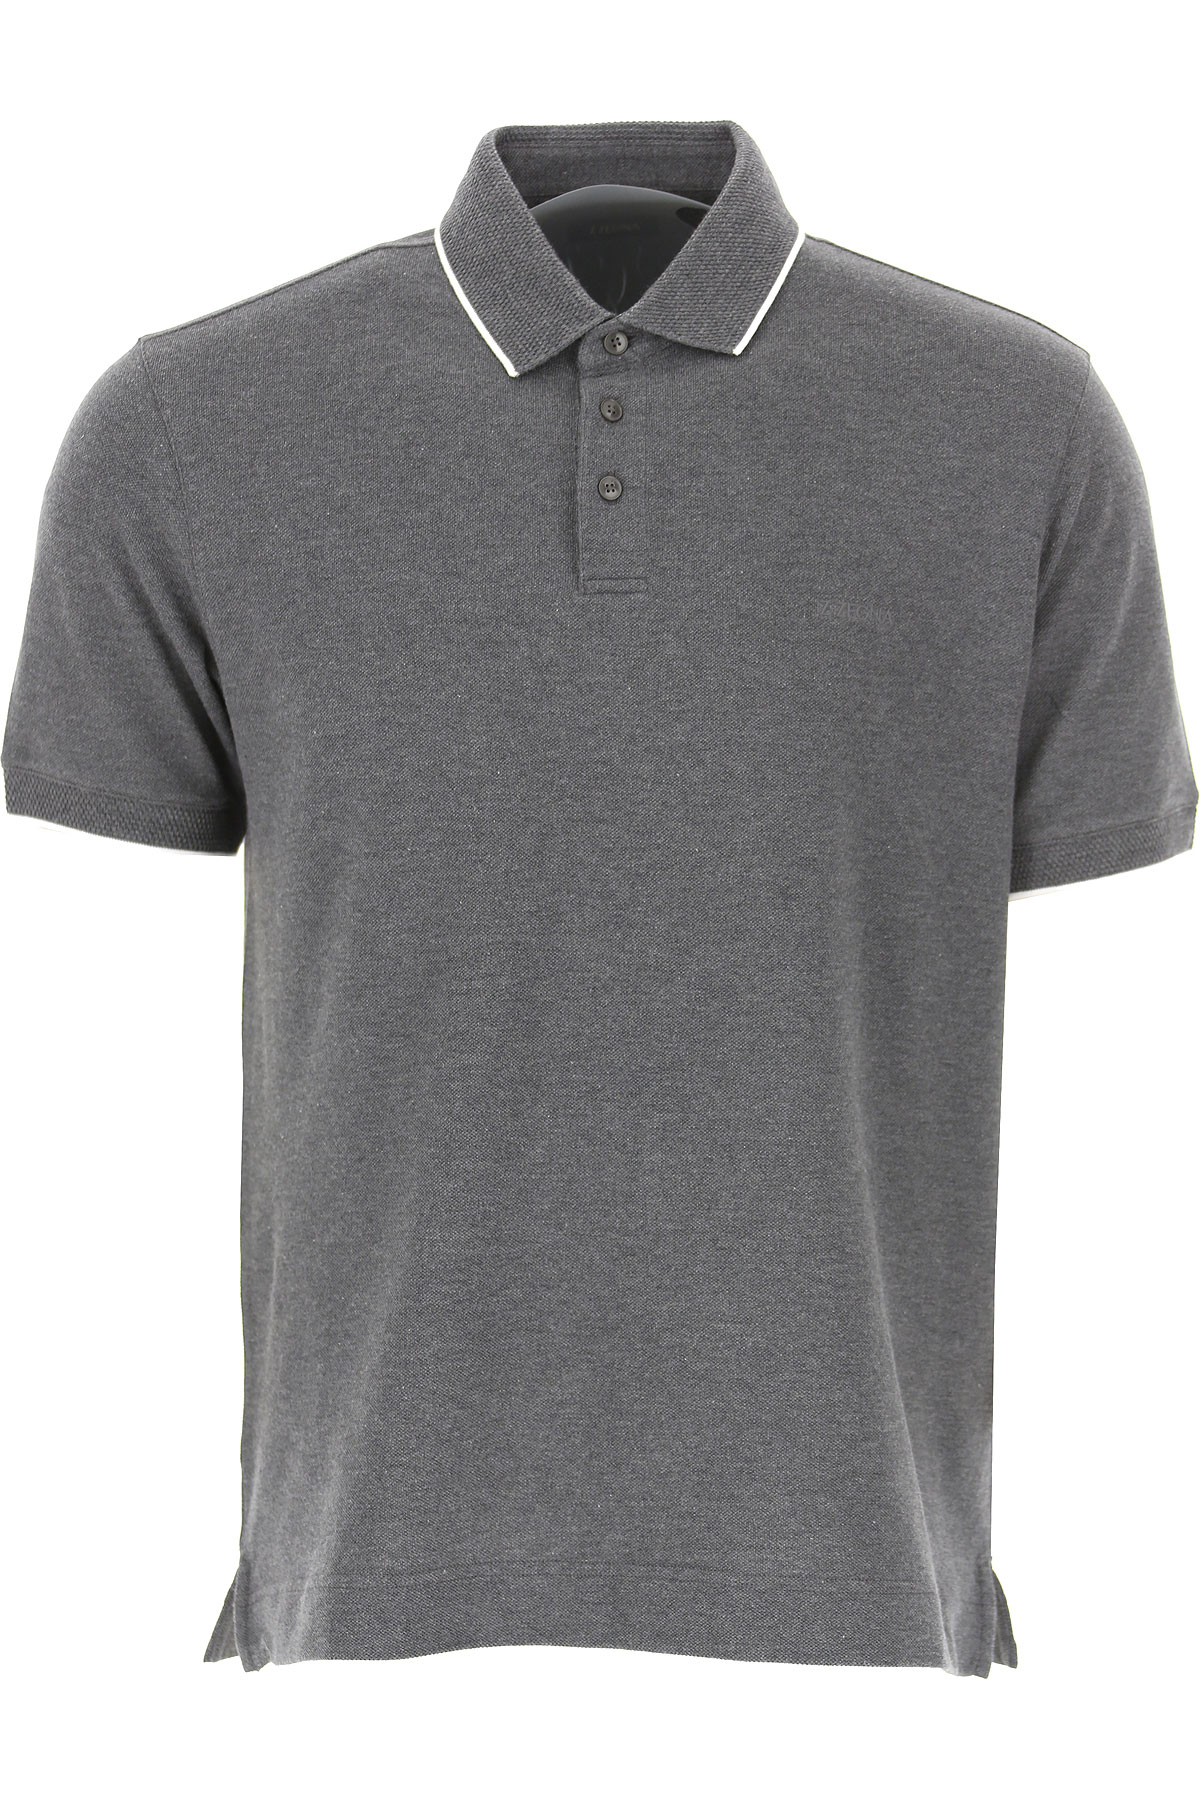 Ermenegildo Zegna Polo Shirt for Men, Medium Grey, Cotton, 2019, M S